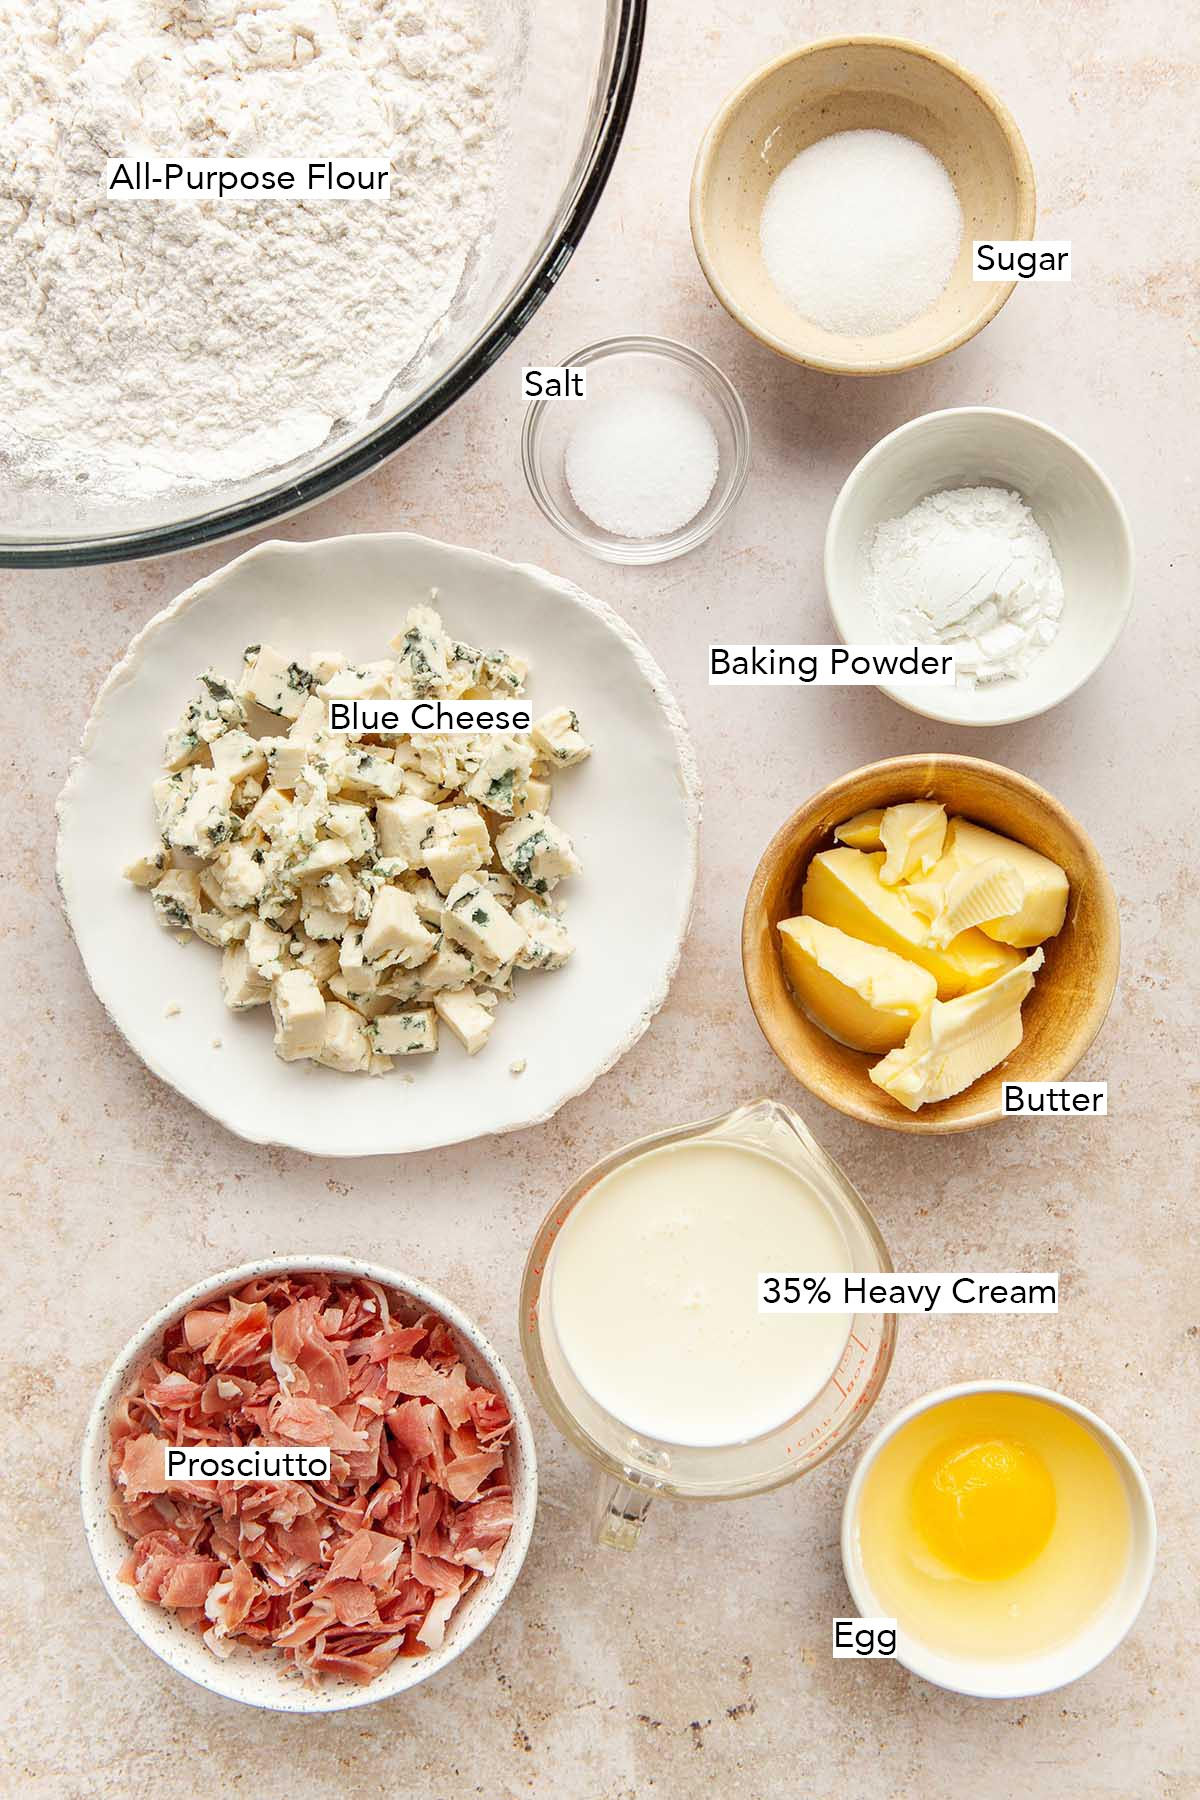 Ingredients to make blue cheese scones with prosciutto.